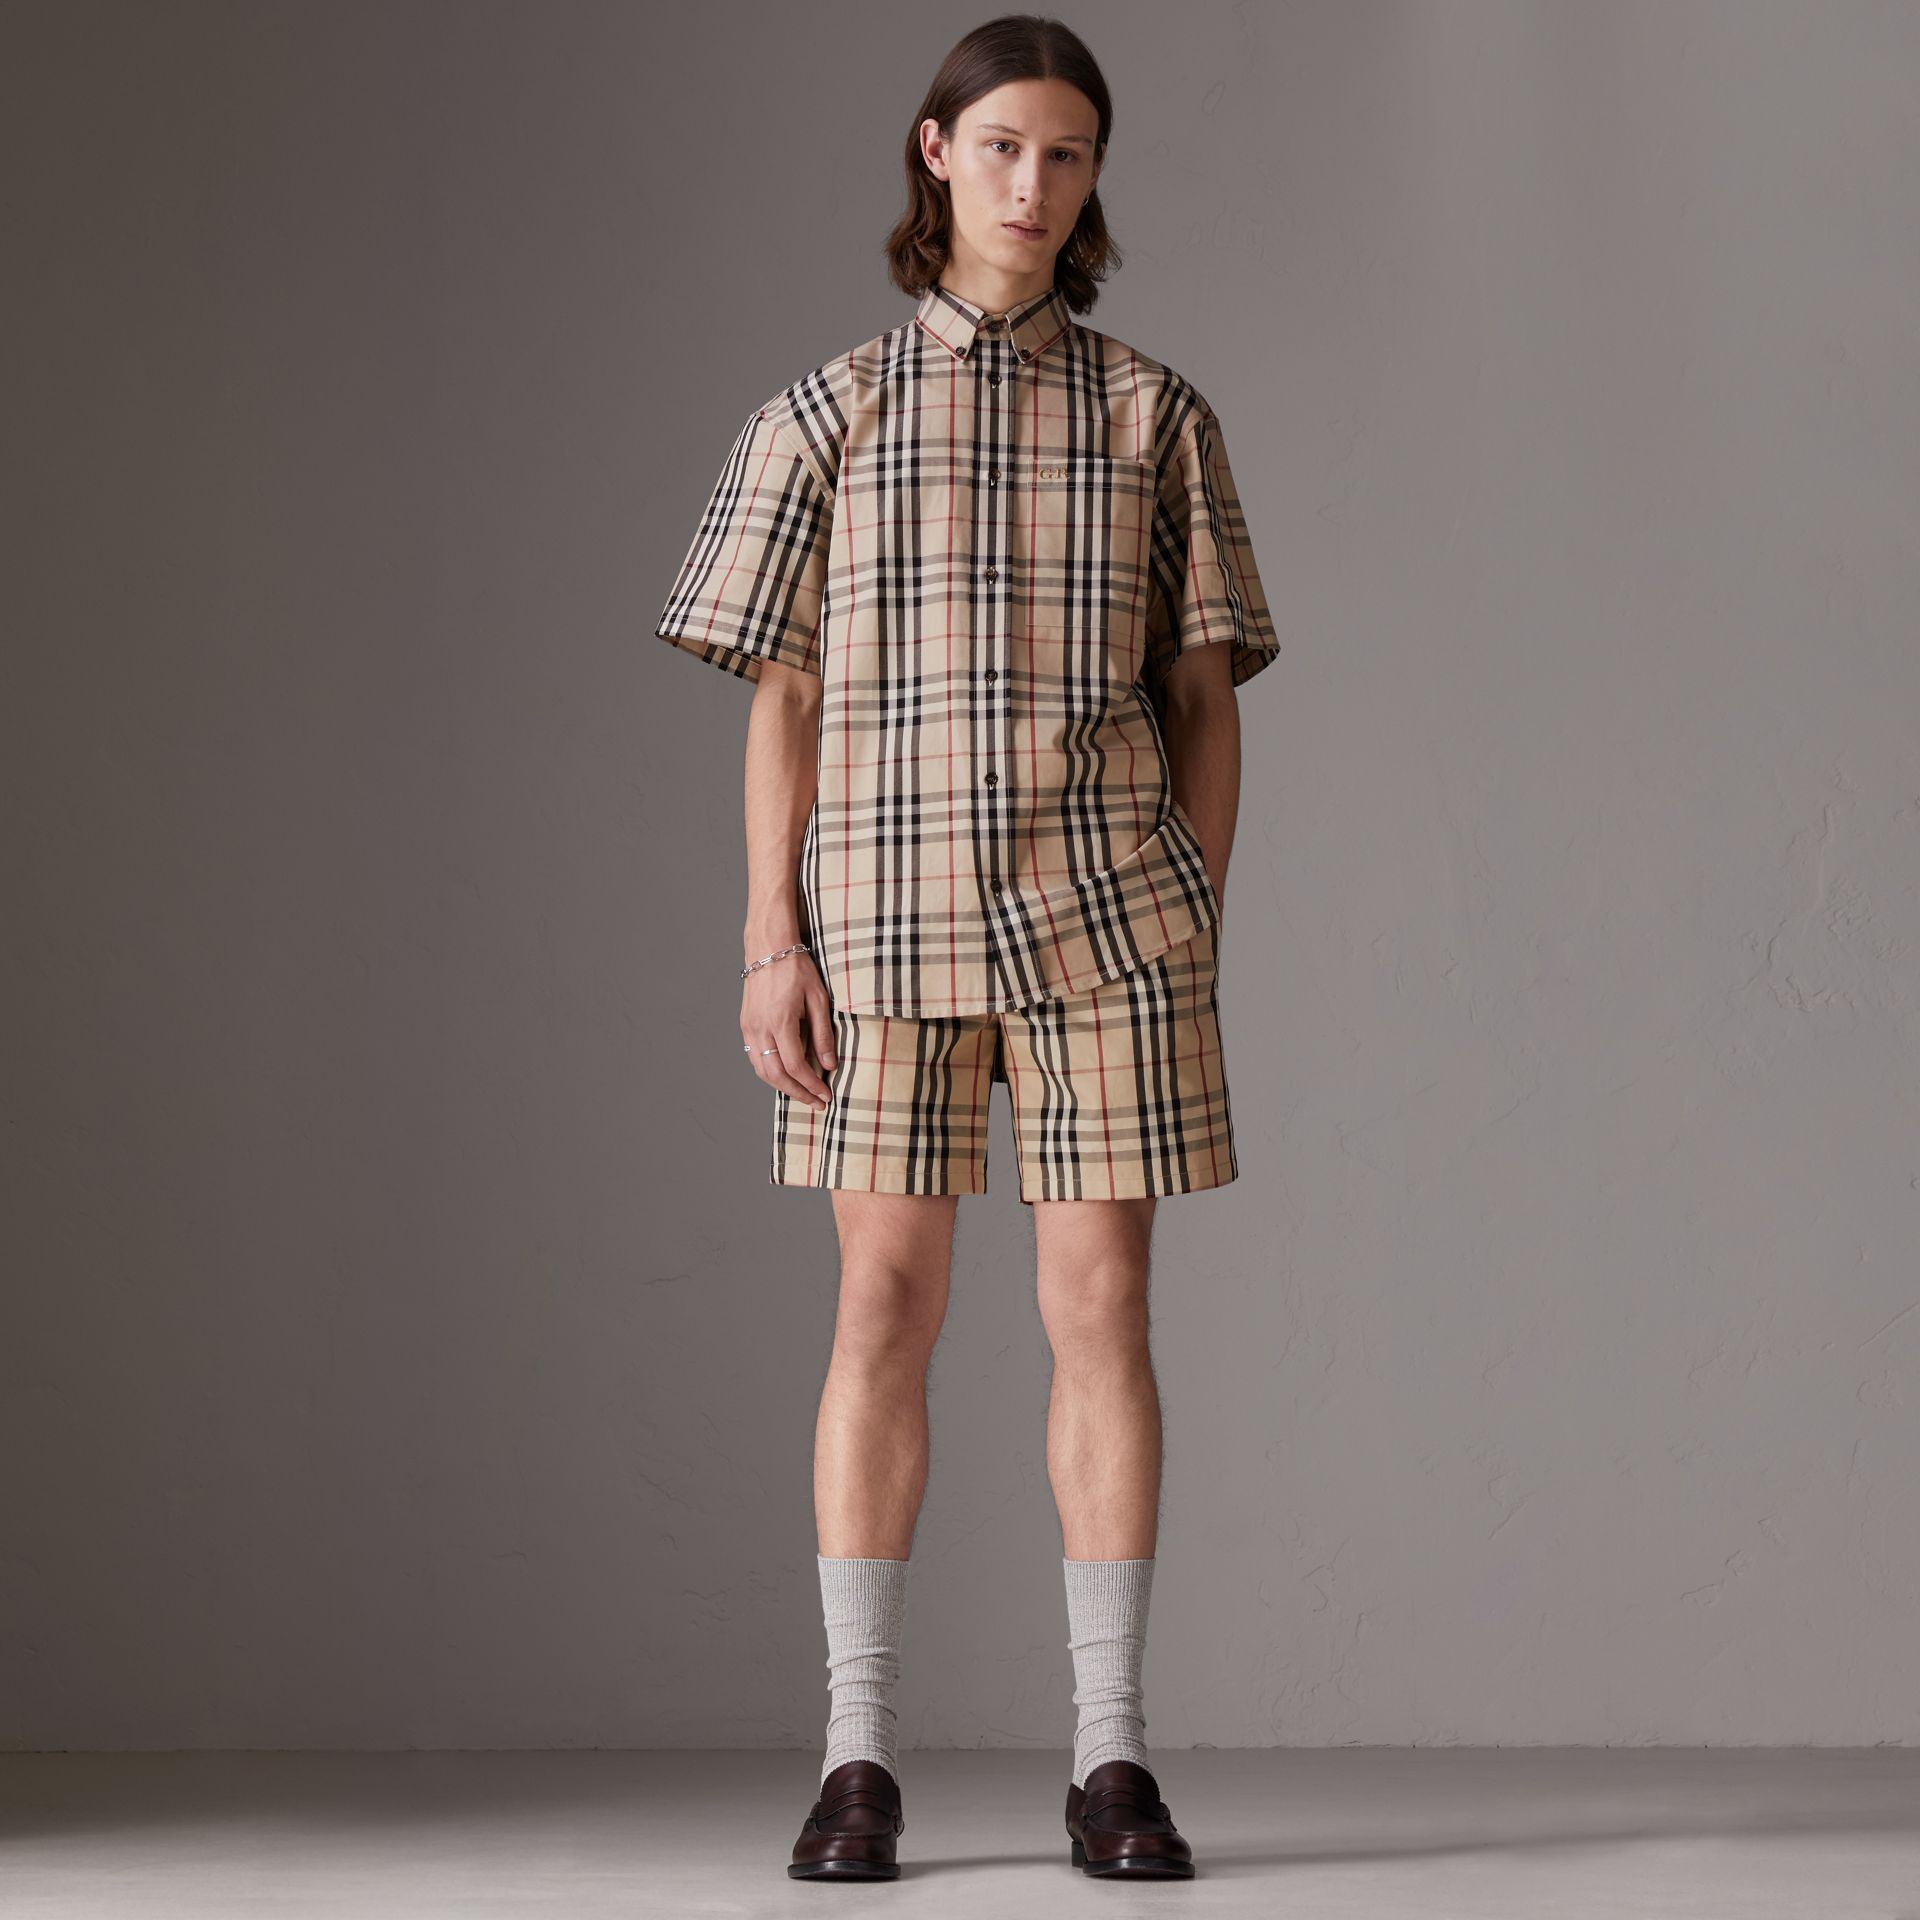 Gosha x Burberry Short-sleeve Check Shirt in Honey | Burberry - gallery image 2